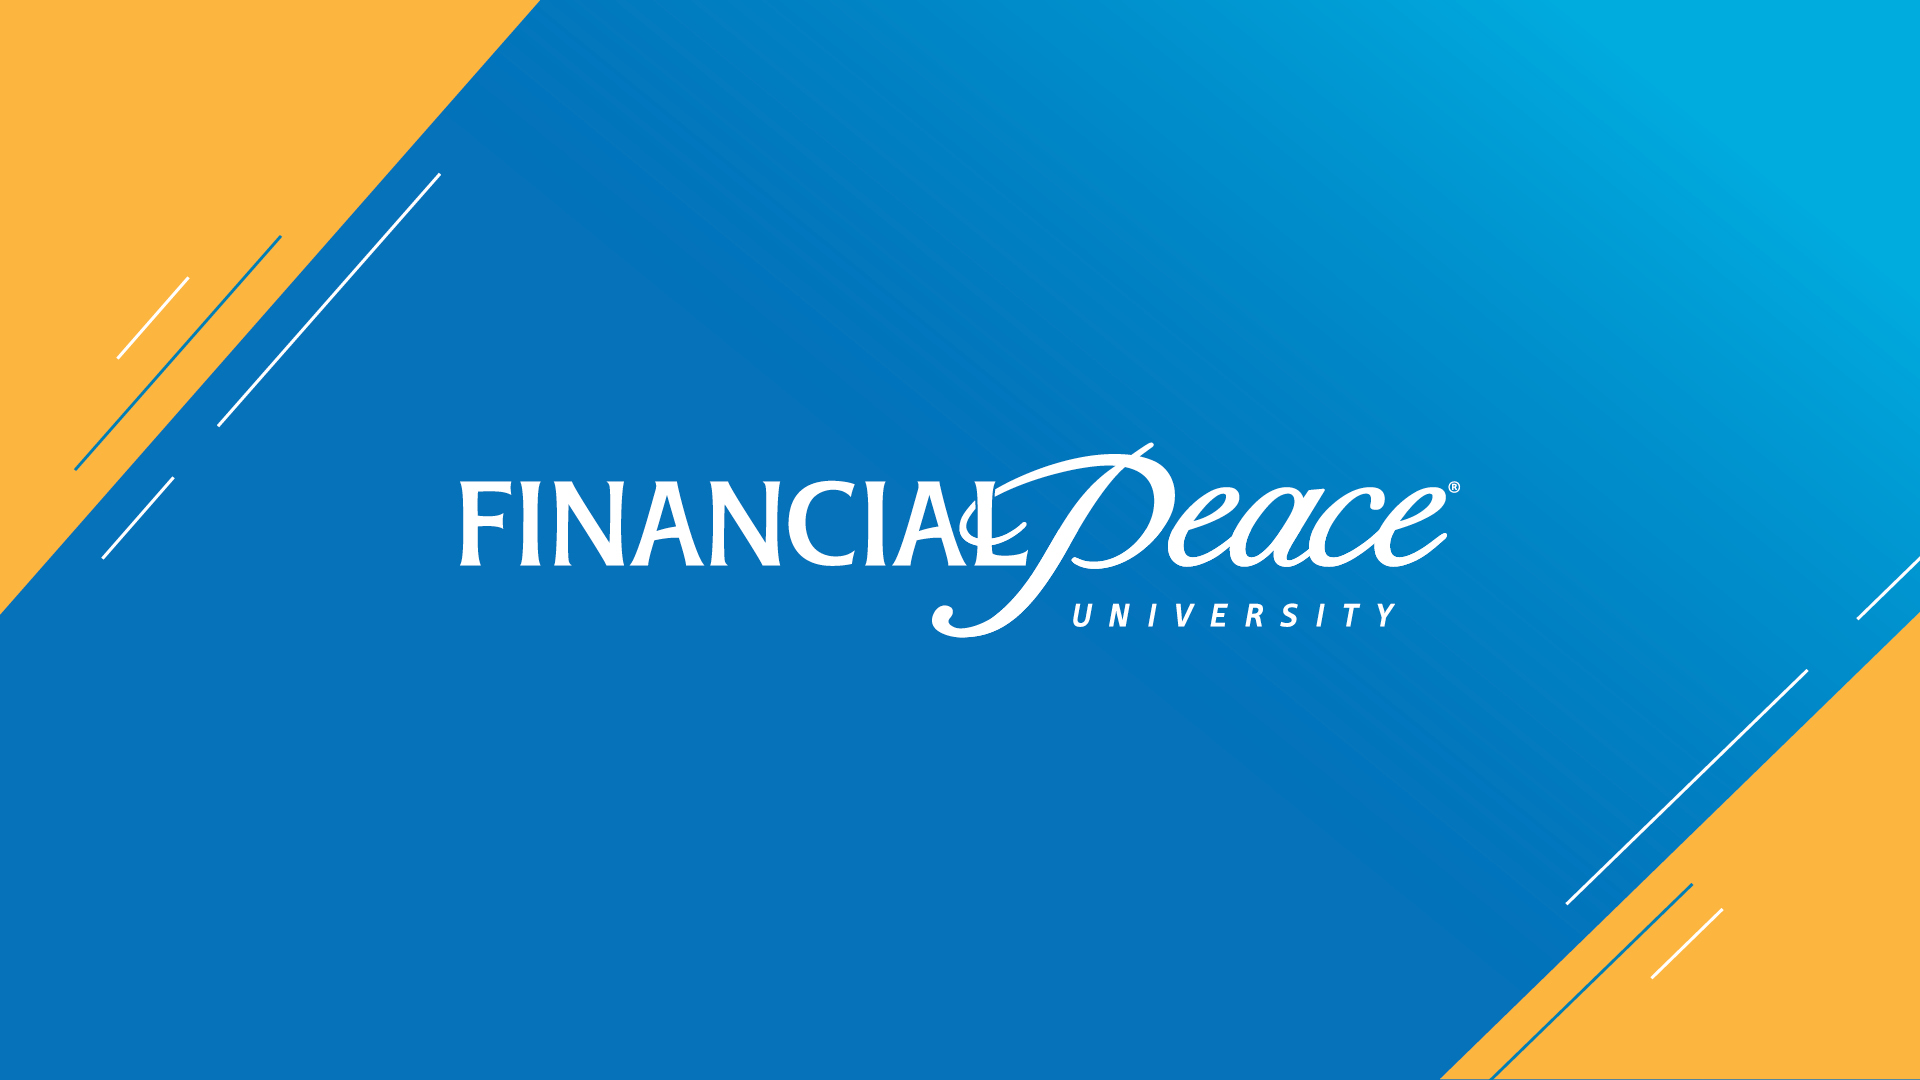 Financial Peace University has helped millions of people get out of debt and control their money! -